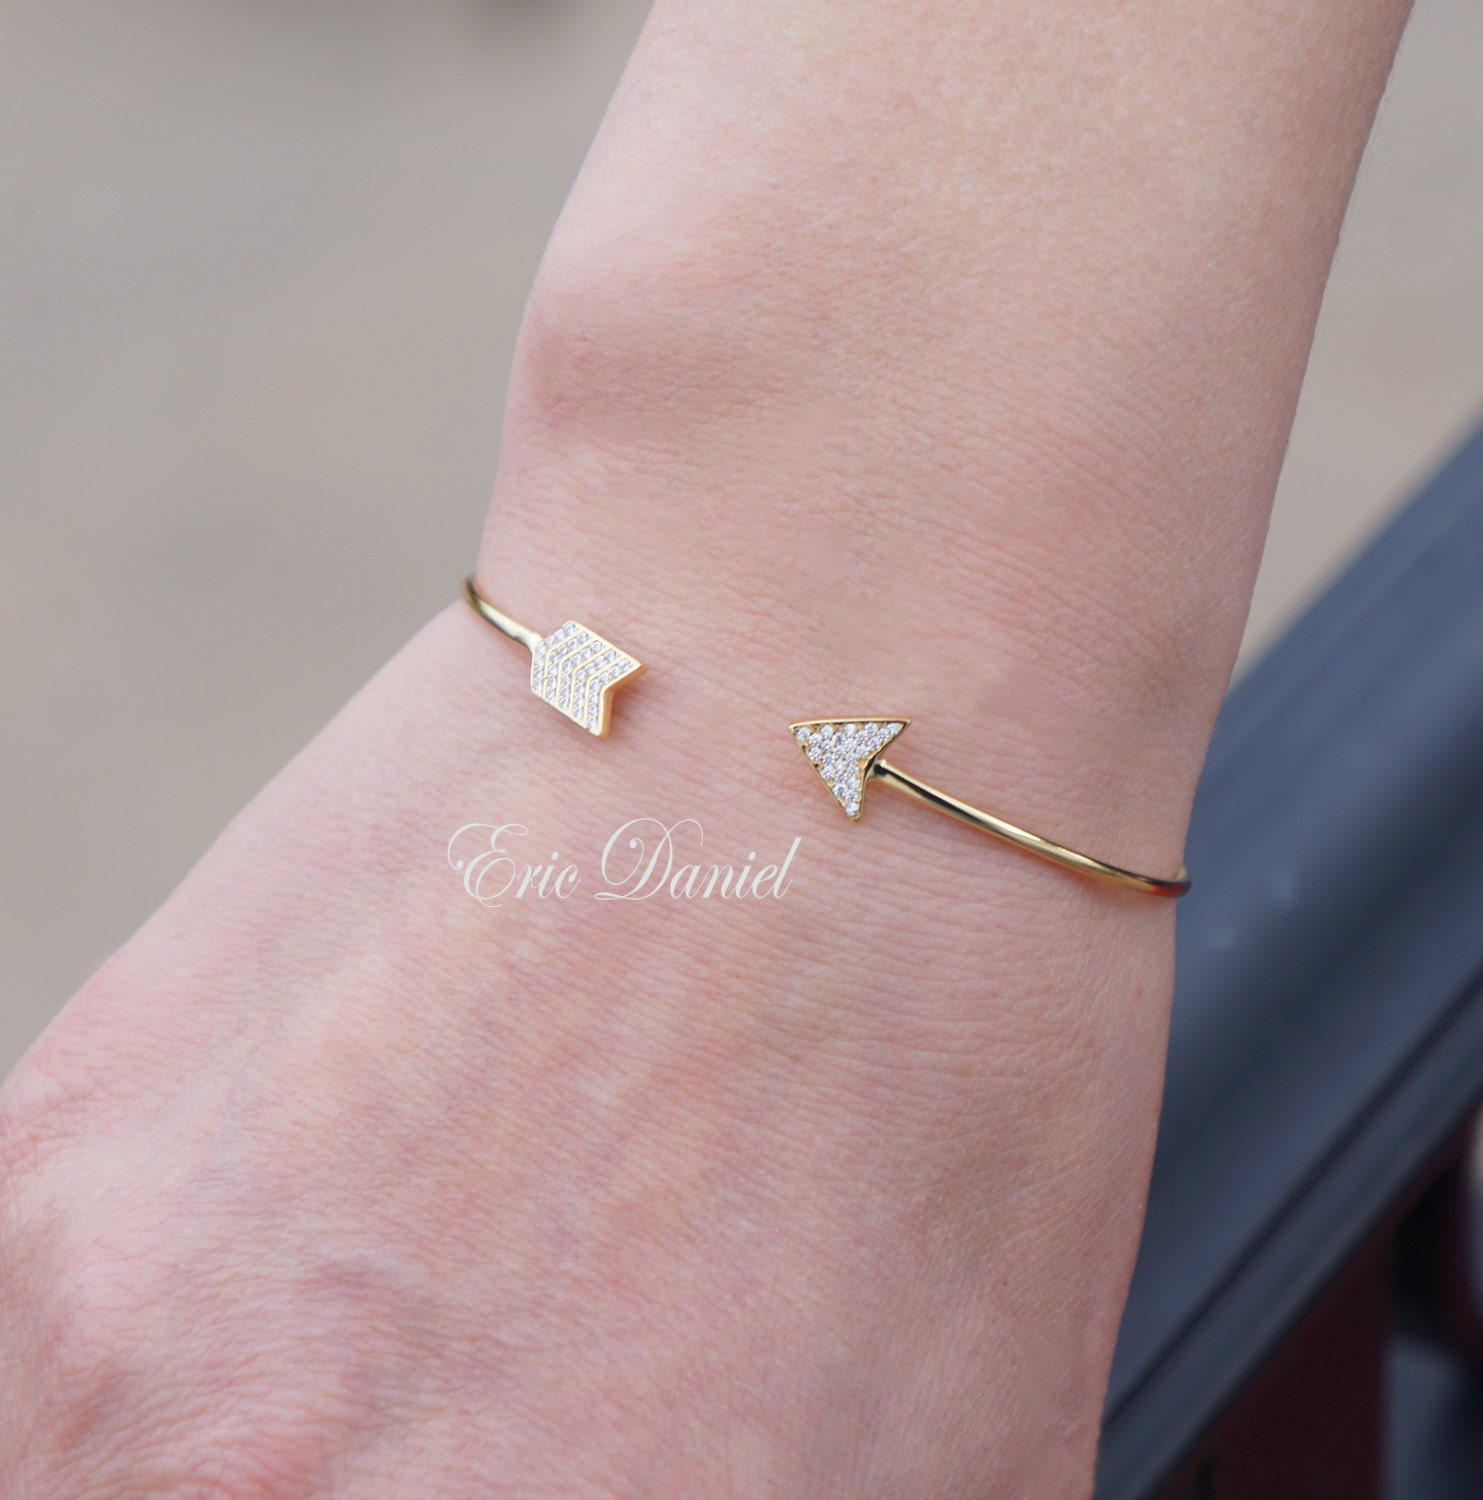 in your chupi dreams bracelet arrow products gold follow